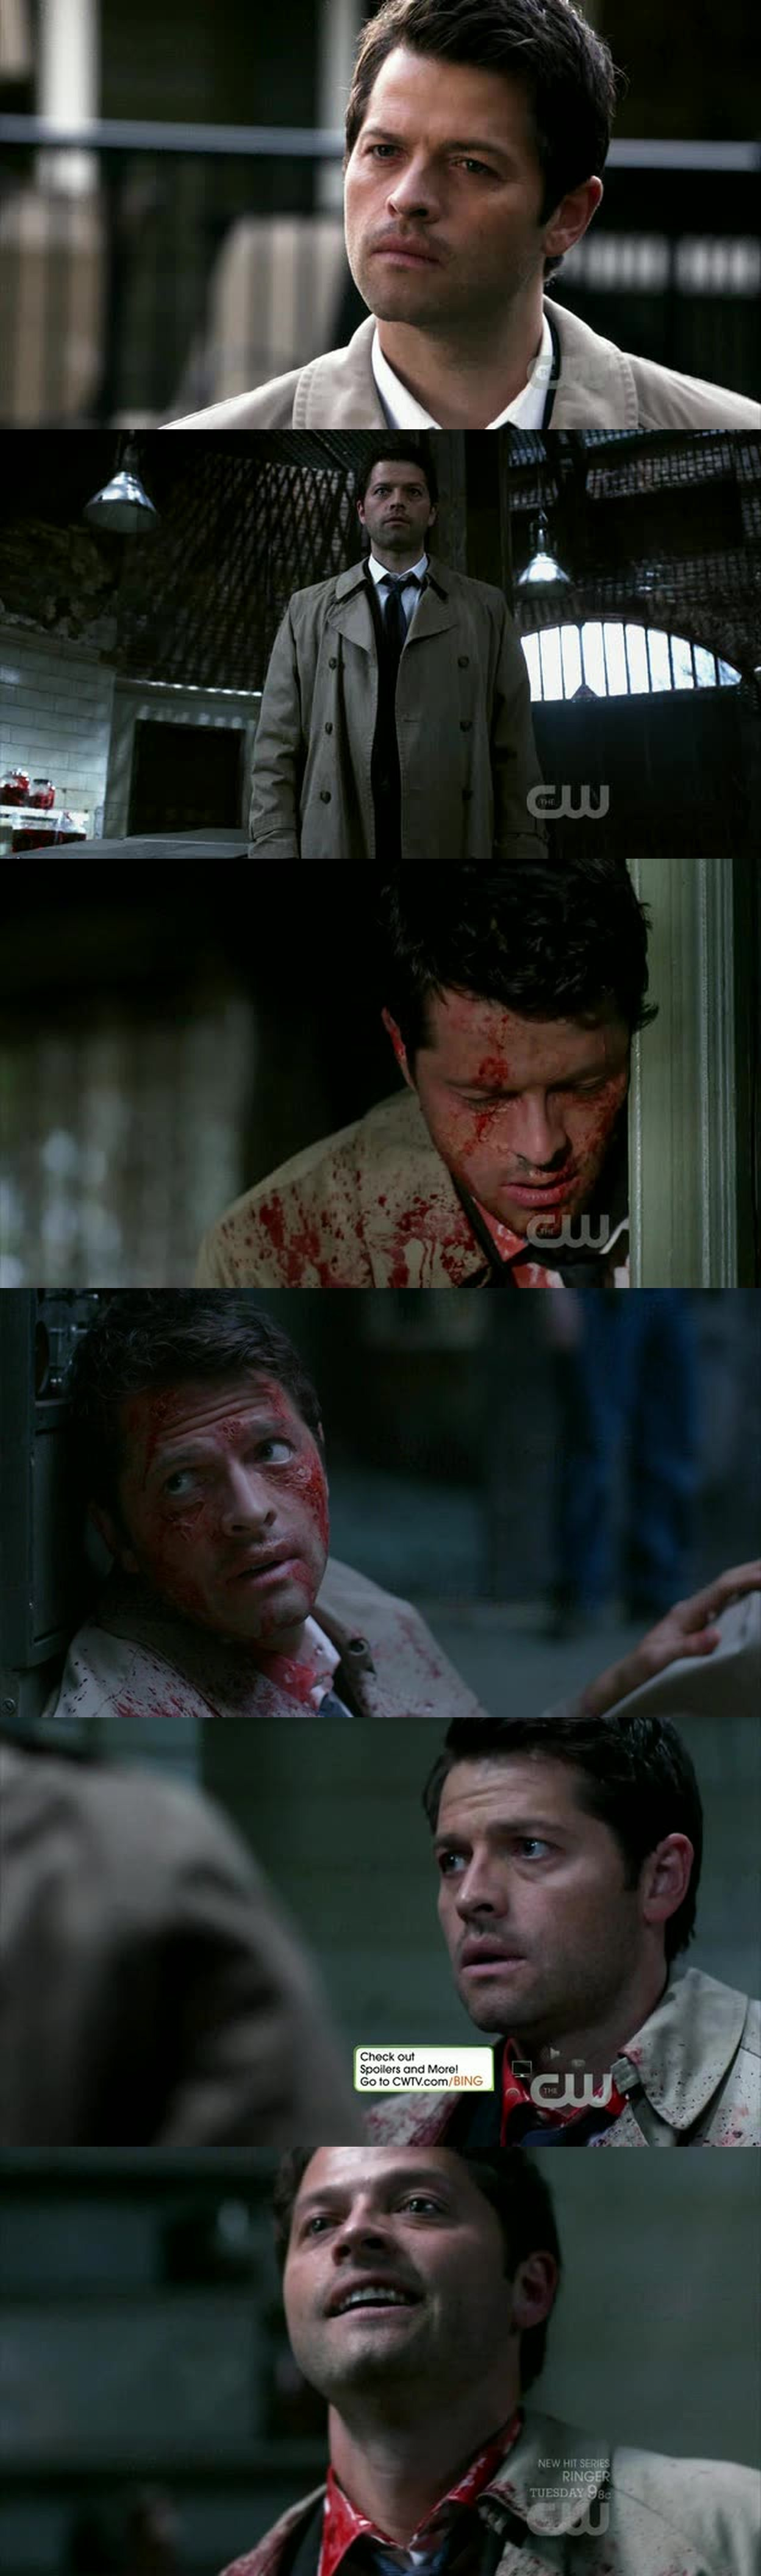 conspiring Cas..God..Gos needs help..Cas asking for forgiveness..Castiel.. Leviathans..all of them played by the only Misha Collins!! *.*